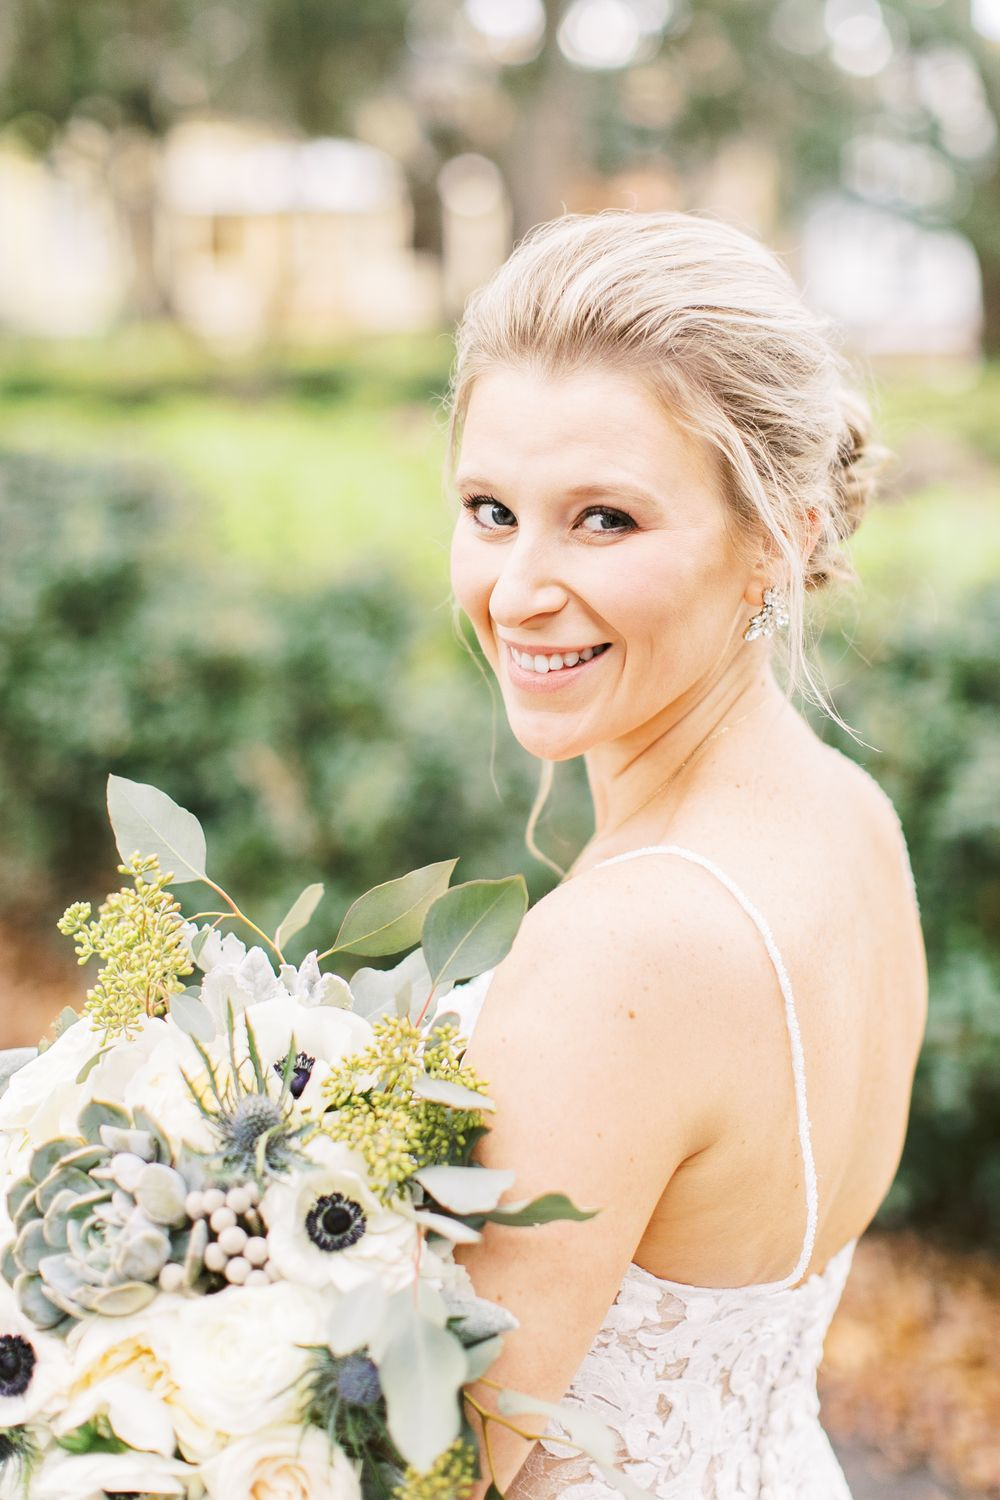 kayley taking bridal portraits on her wedding day in savannah, ga